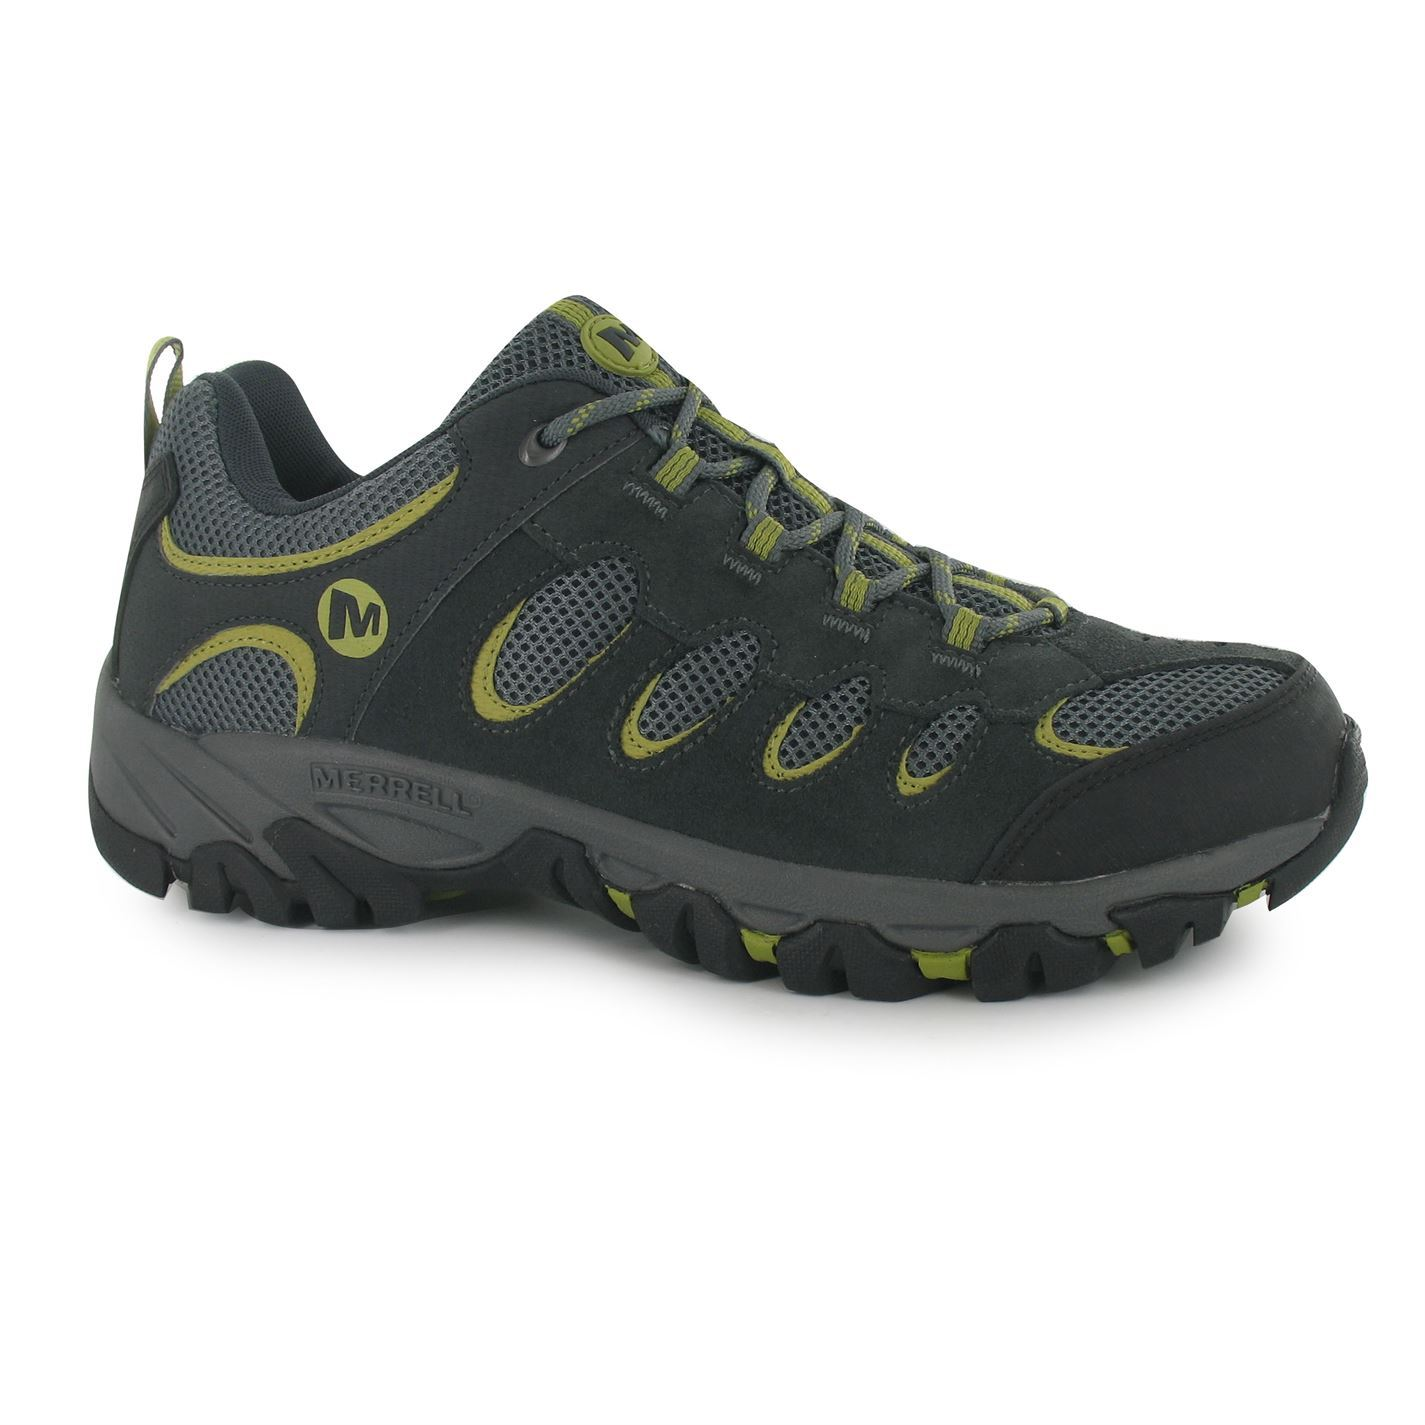 I searched for outlet merrell shoes on bestffileoe.cf and wow did I strike gold. I love it.